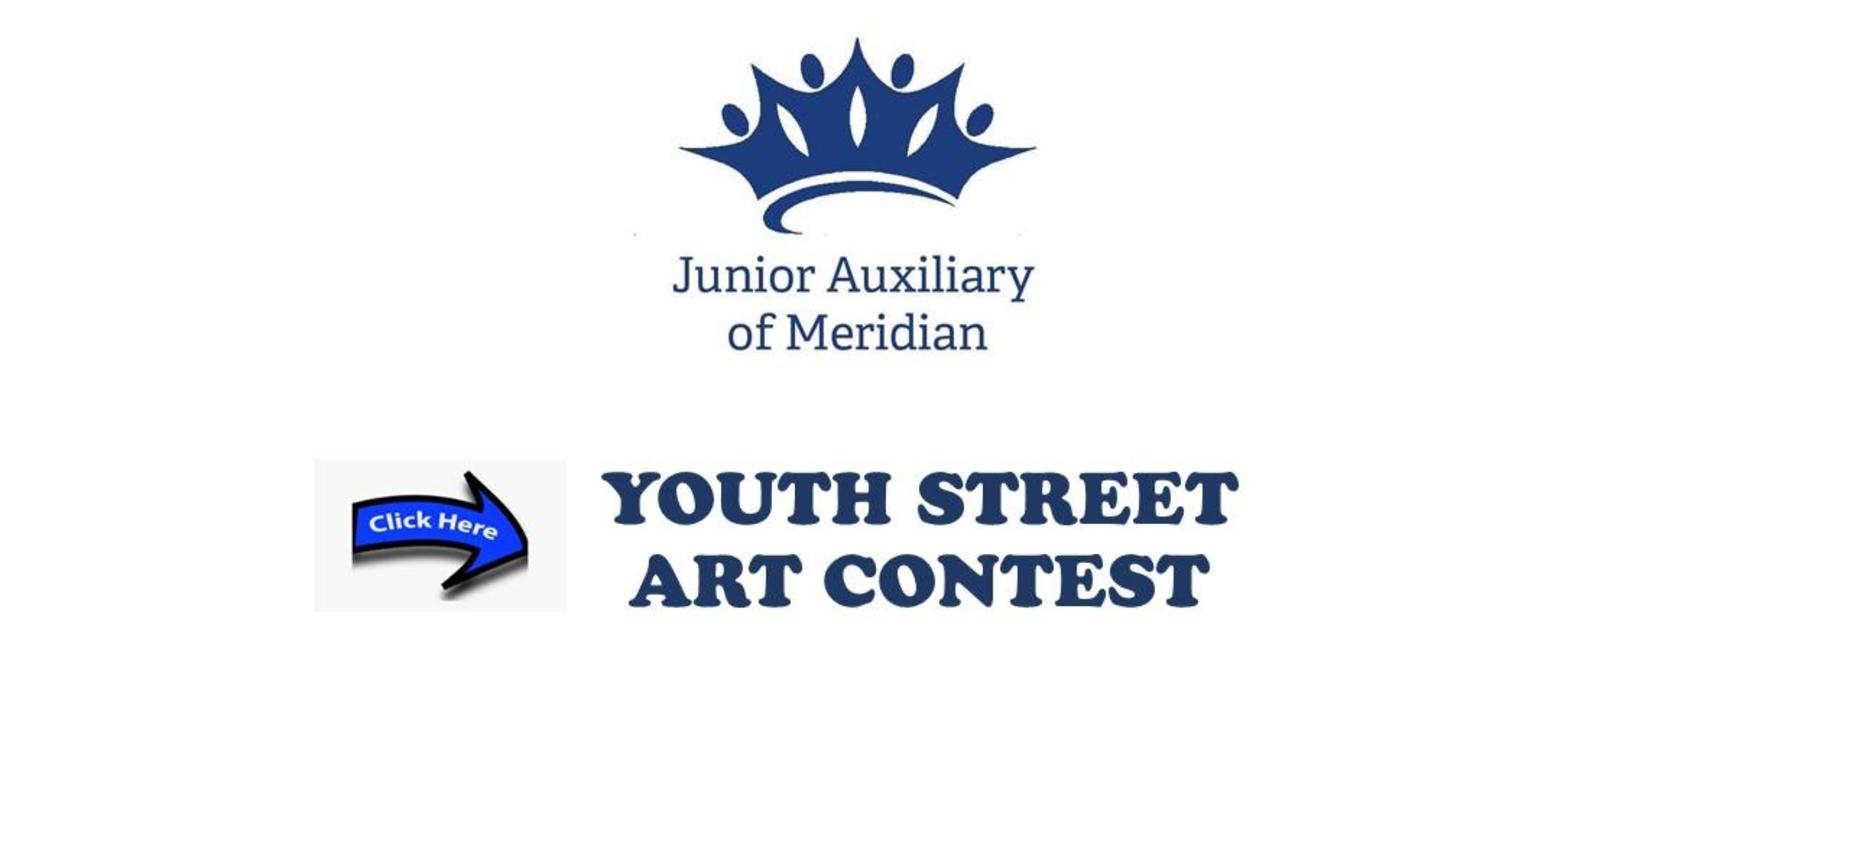 Junior Auxiliary Youth Street Art Contest Graphic